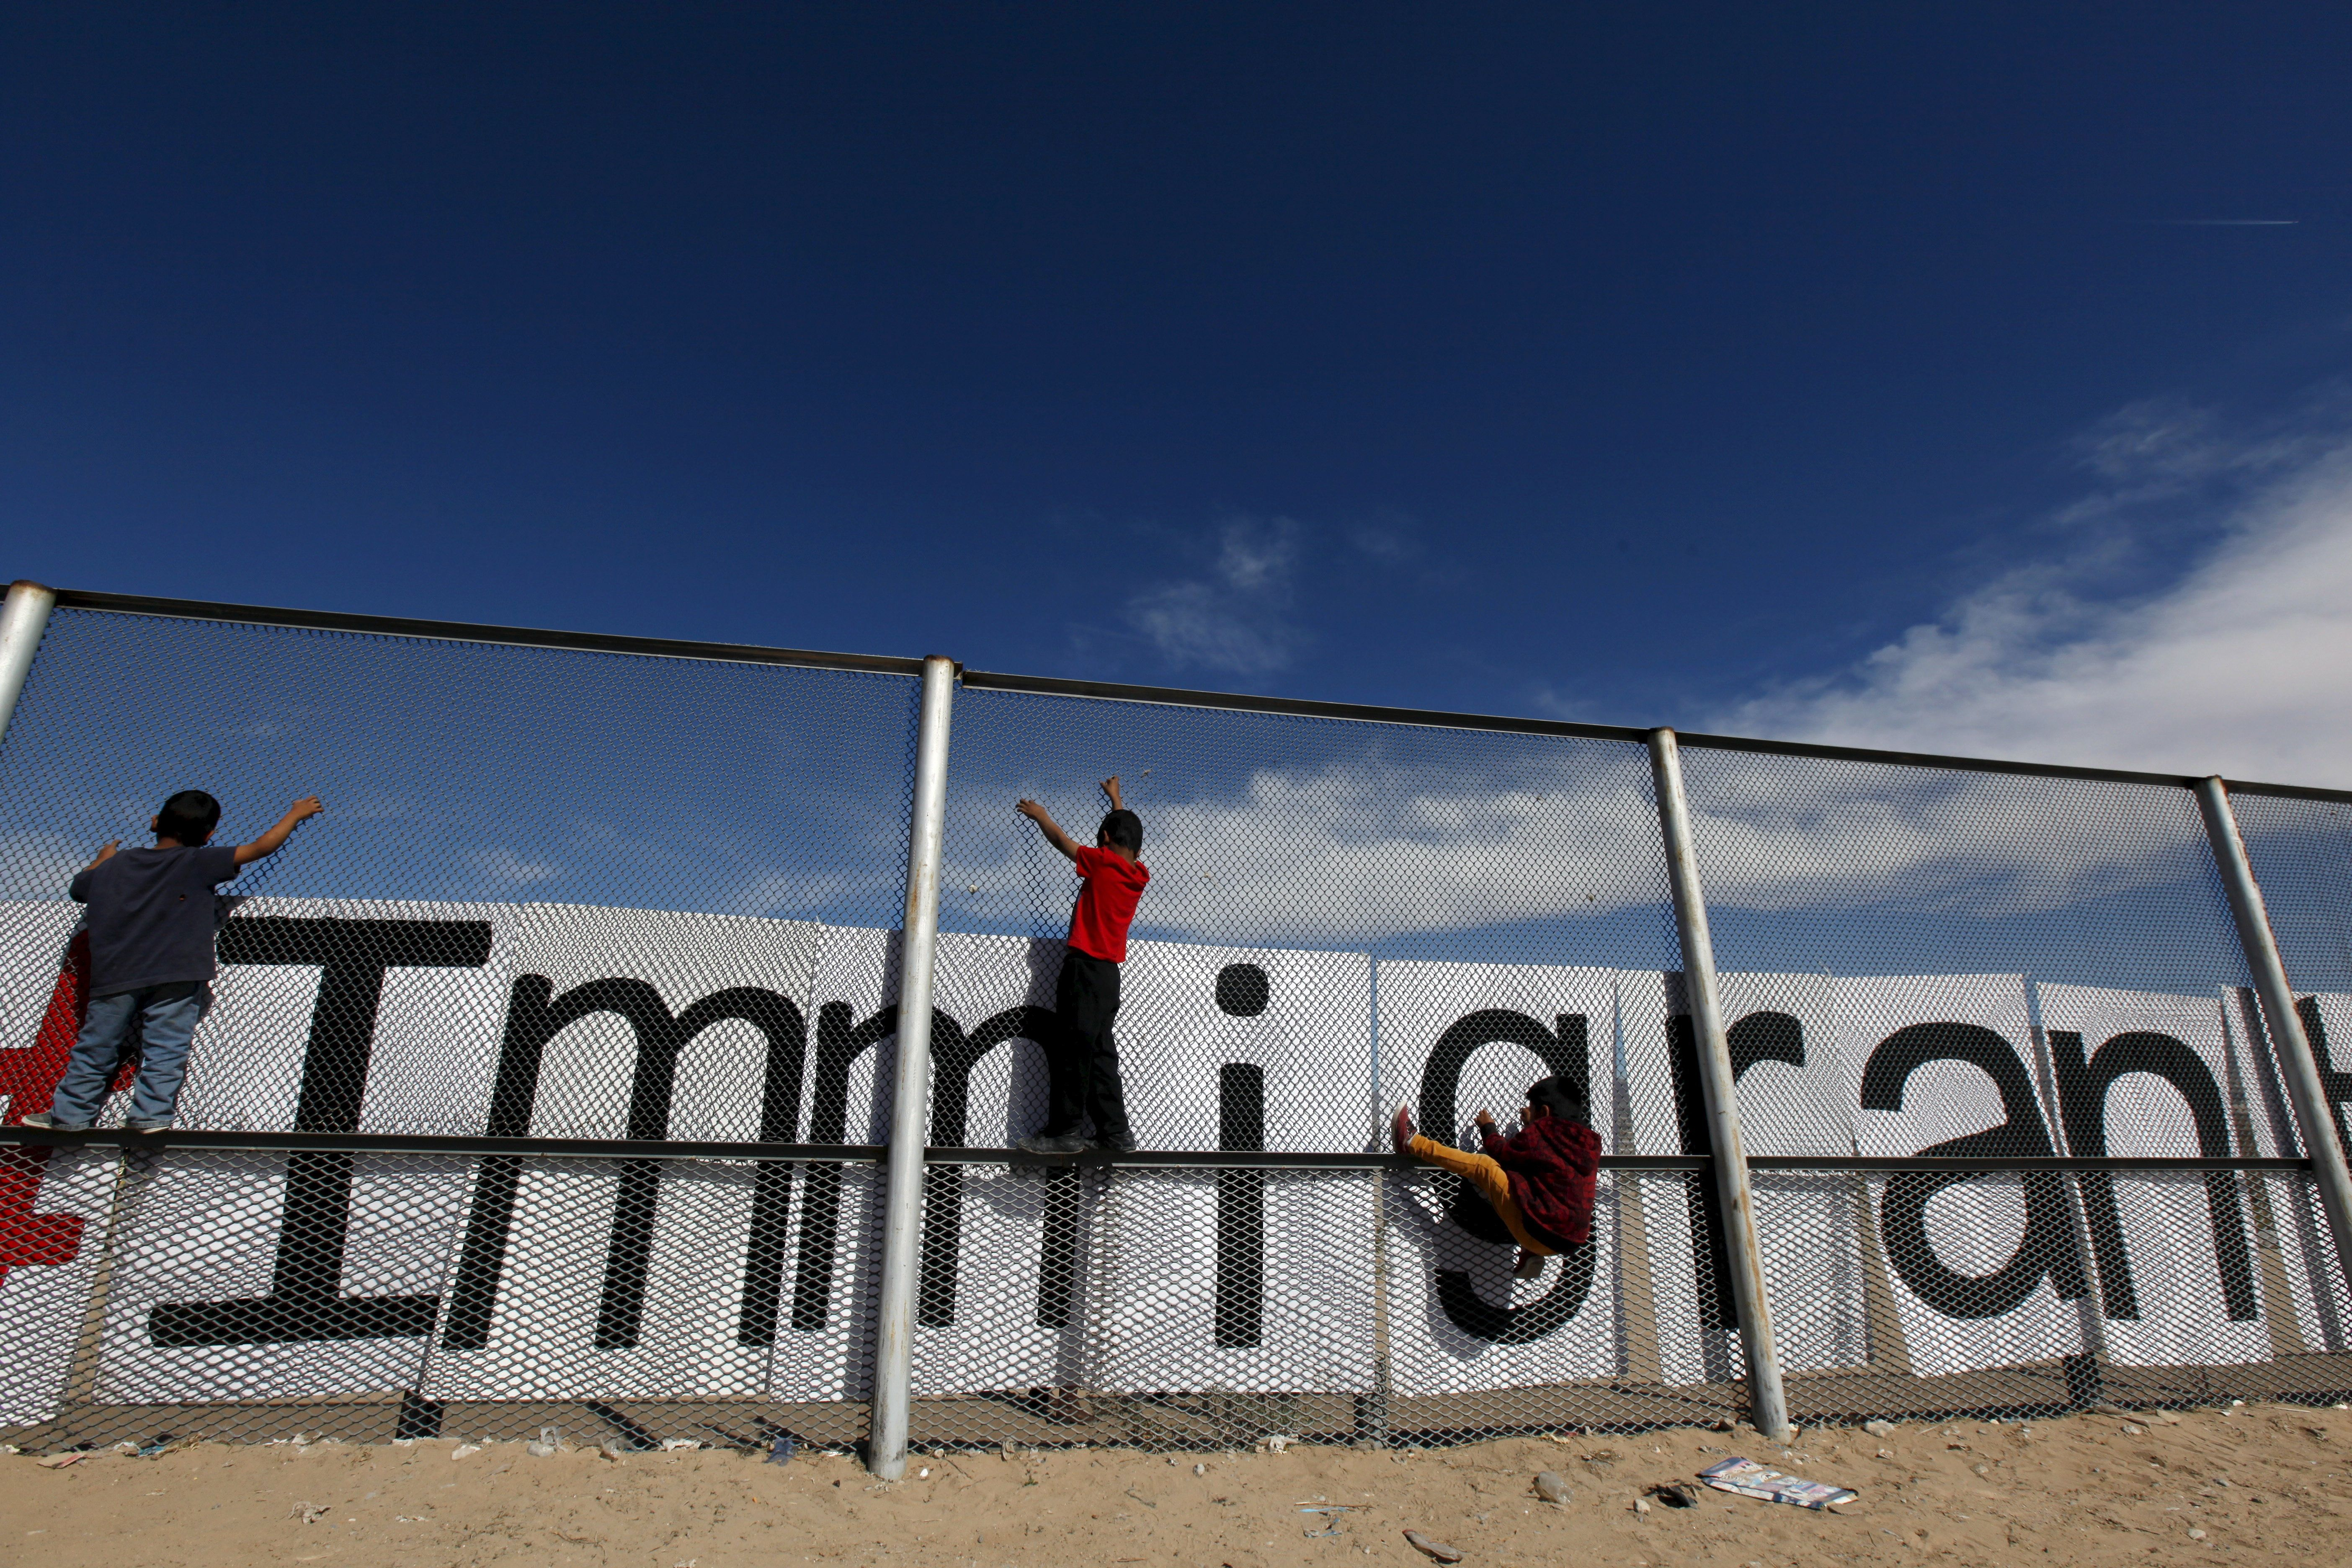 Children climb onthe border fence between Ciudad Juarez, Mexico, and El Paso, Texas, during a bi-national Mass in suppo